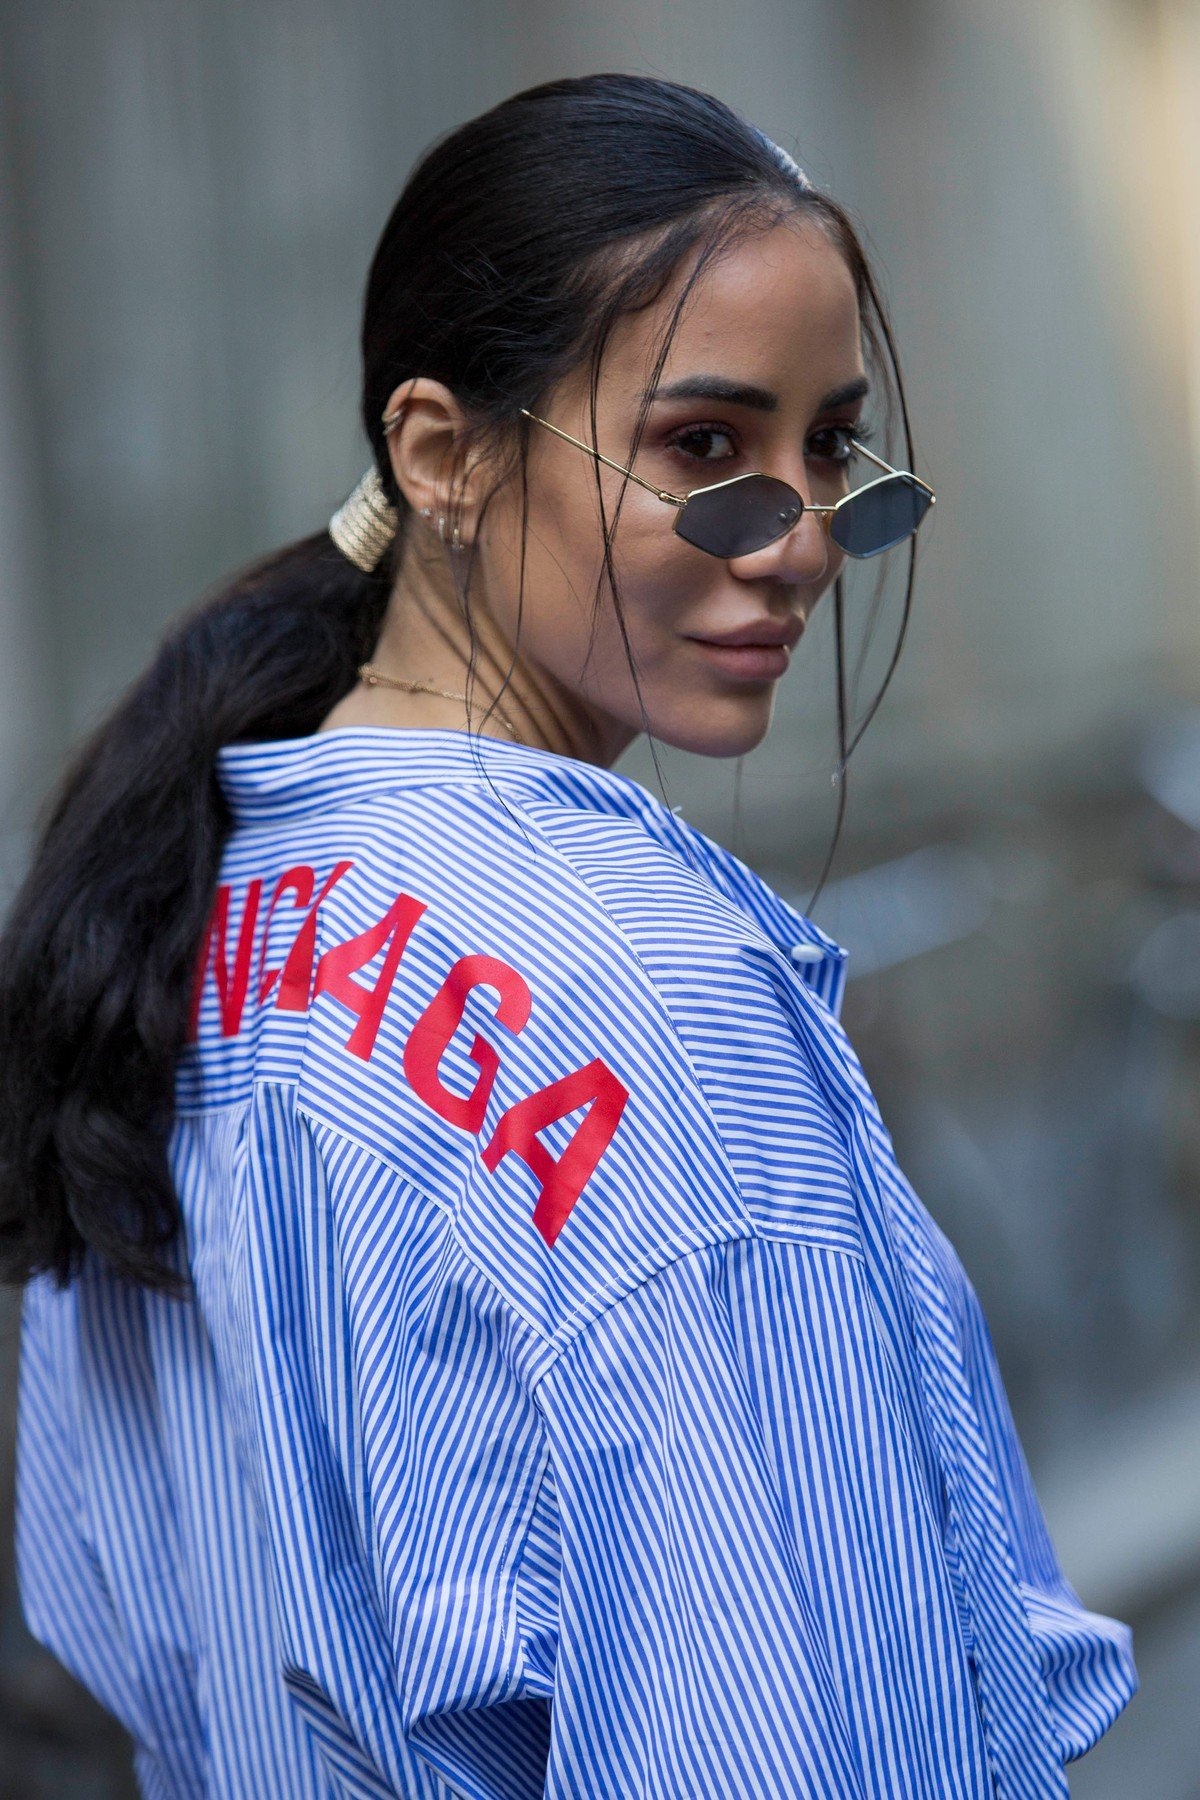 Fashion: street style at Milan Fashion Week 2019 outside of the Blumarine show in Milan on February 22, 2019. 22 Feb 2019, Image: 416153670, License: Rights-managed, Restrictions: World Rights, Model Release: no, Credit line: Profimedia, Mega Agency